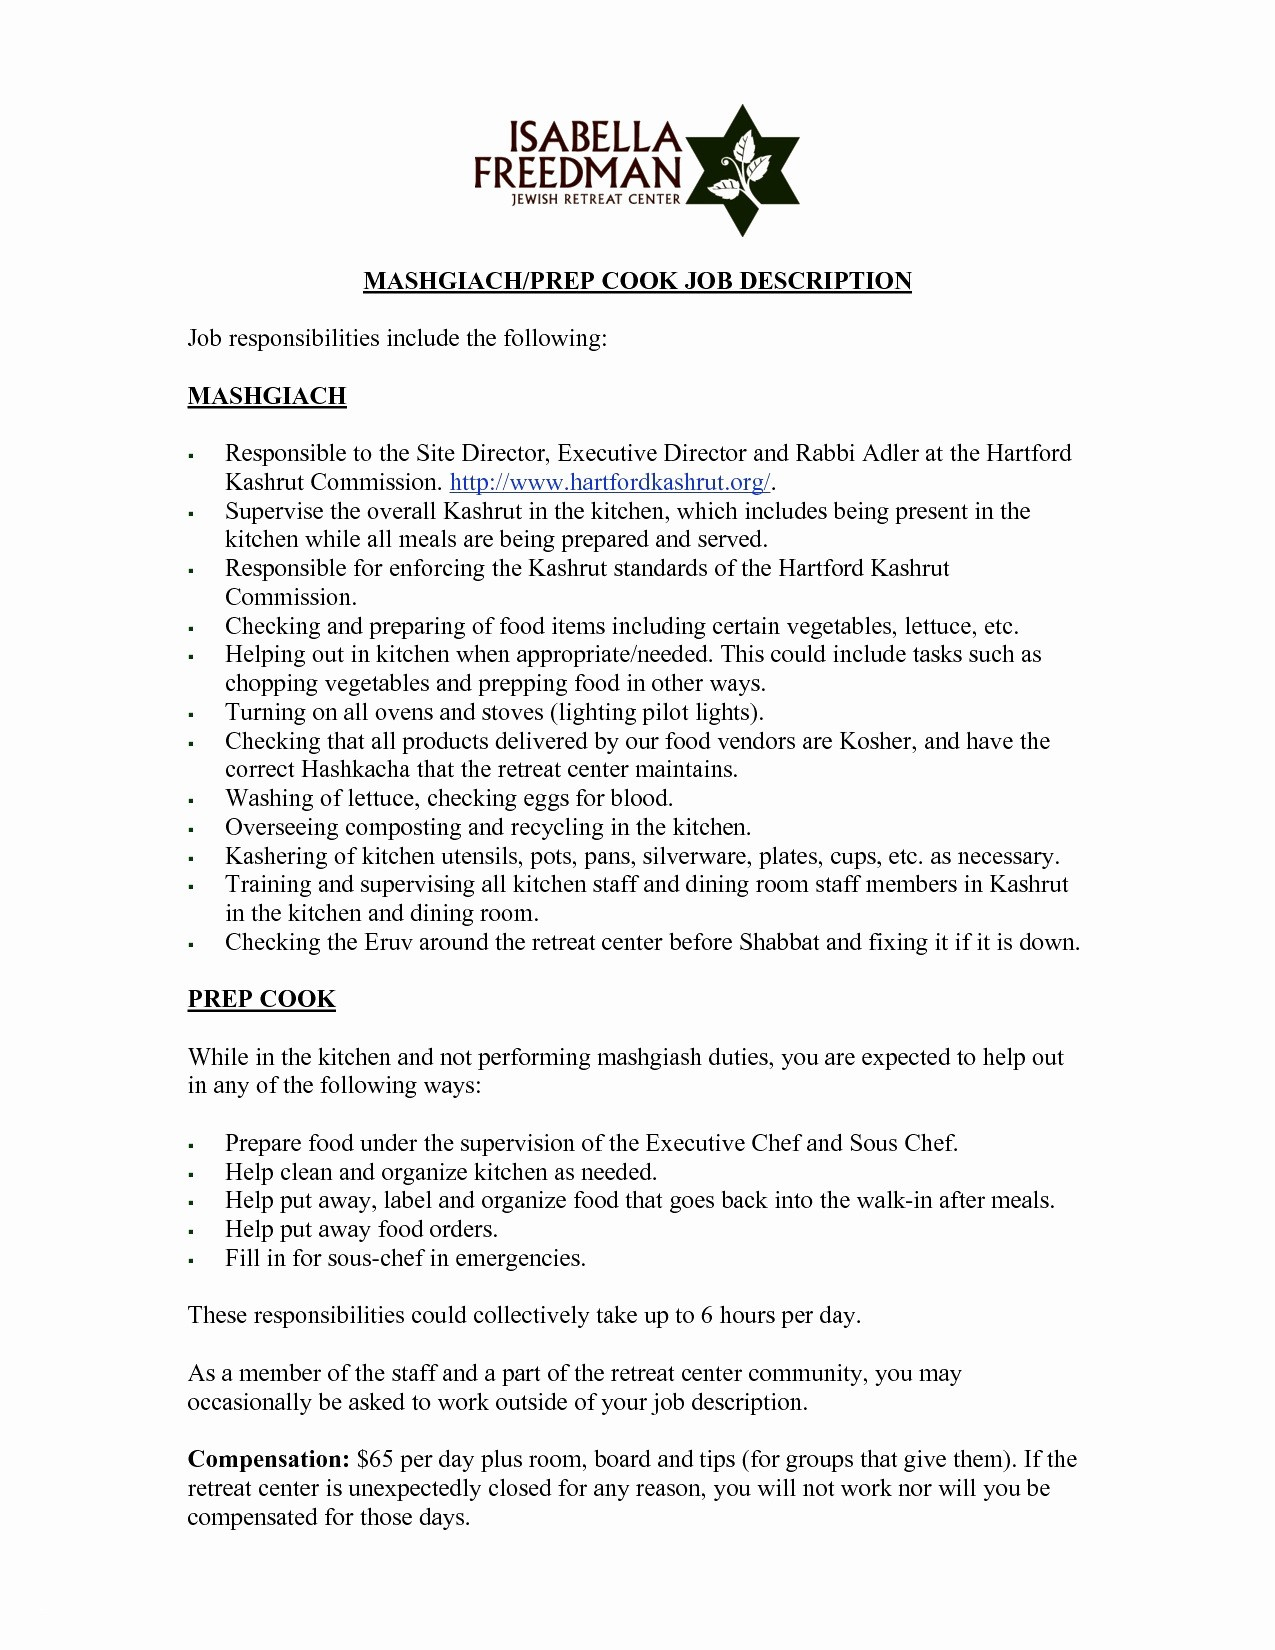 Draft Cover Letter Template - Cover Letter Job Sample Fresh Resume Doc Template Luxury Resume and